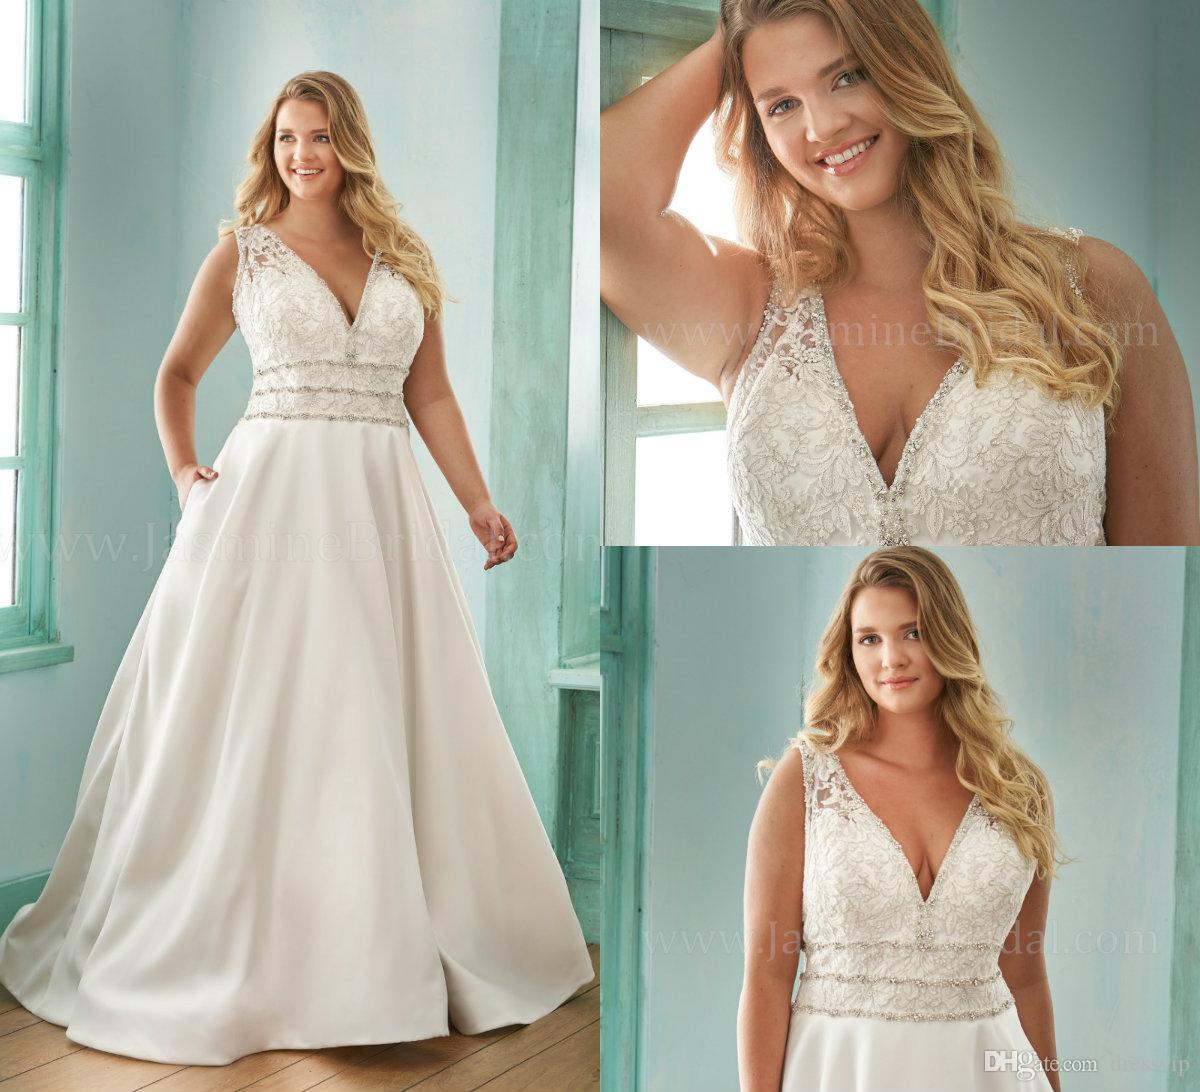 2019 Plus Size Wedding Dresses Beaded Lace Appliqued A Line Floor Length V Neck Country Bridal Gowns Belt Beach Wedding Dress Garden Style